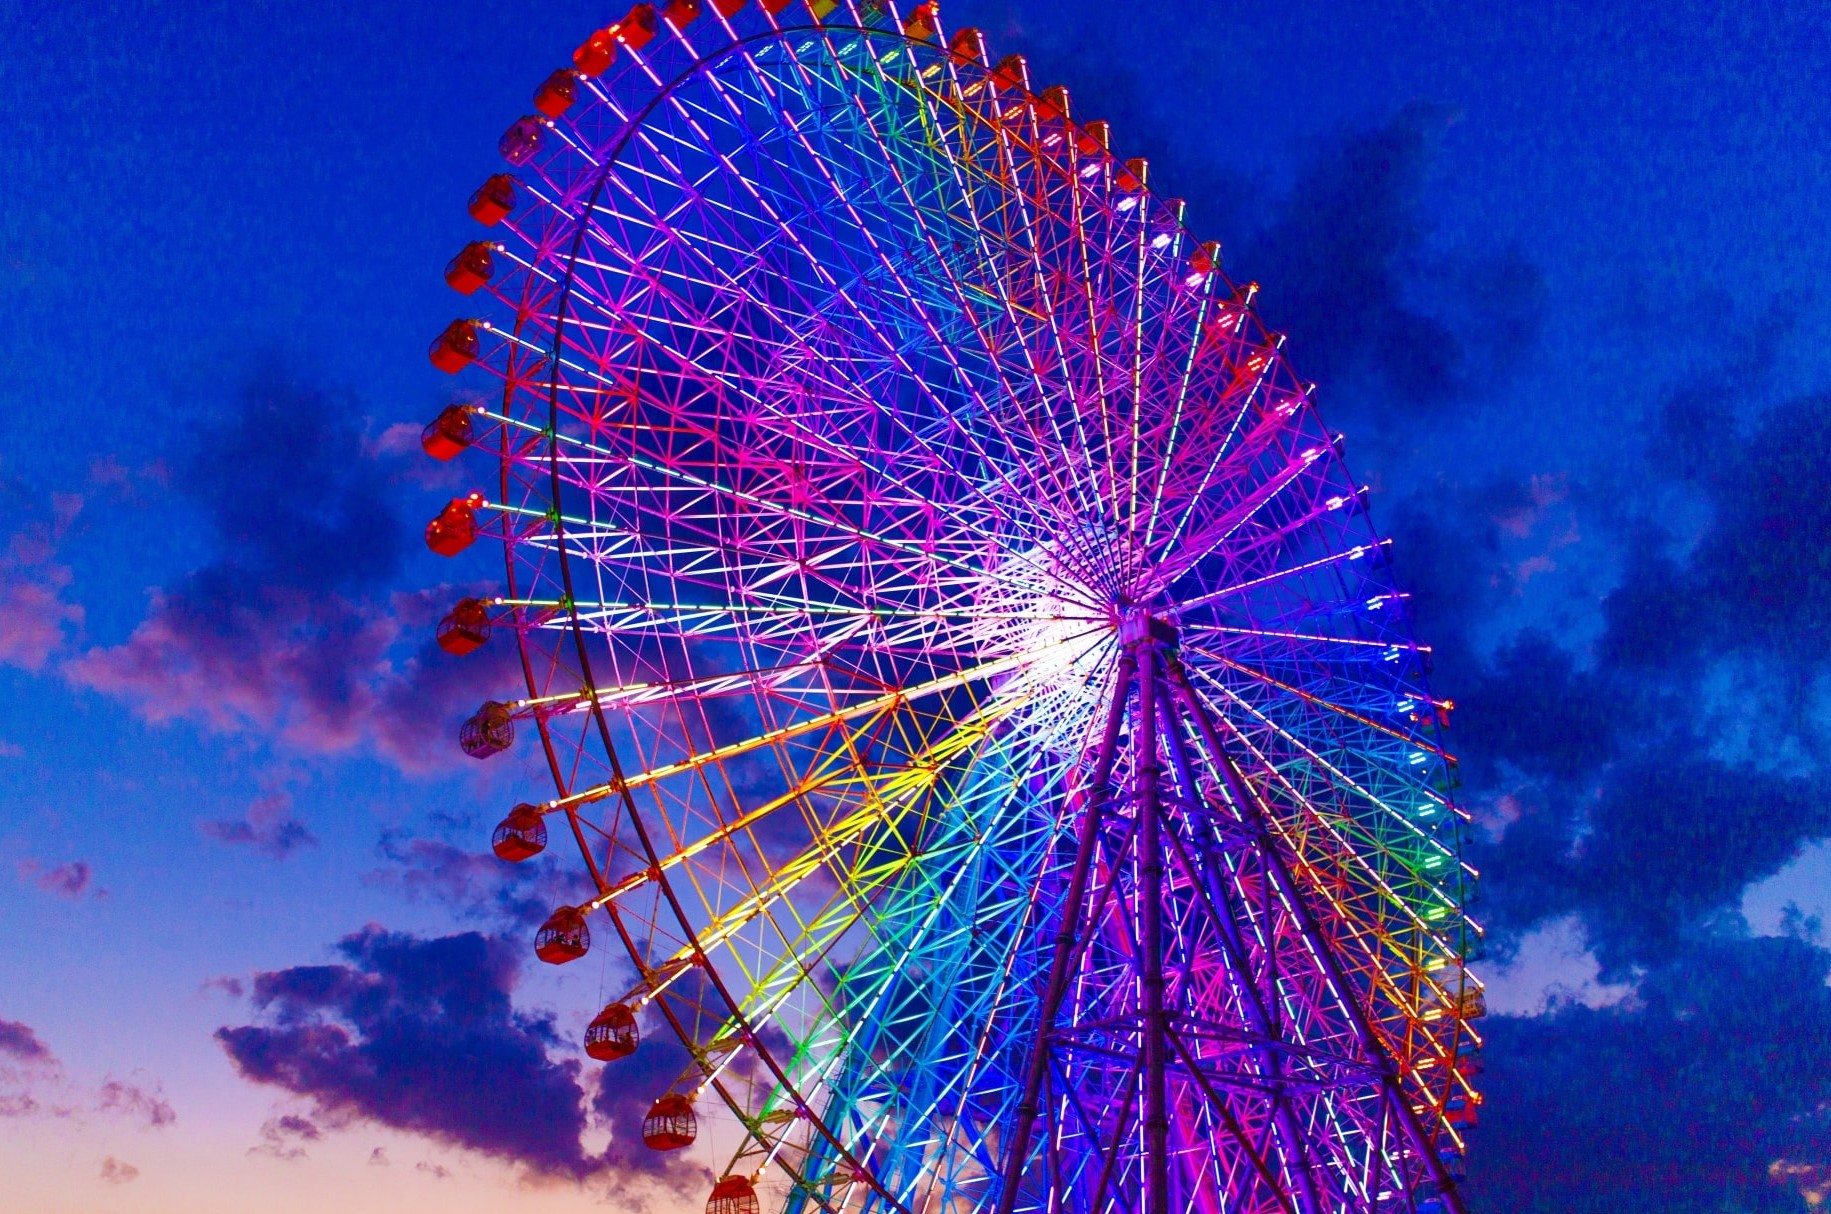 The colourful Ferris wheel of Tempozan after sunset